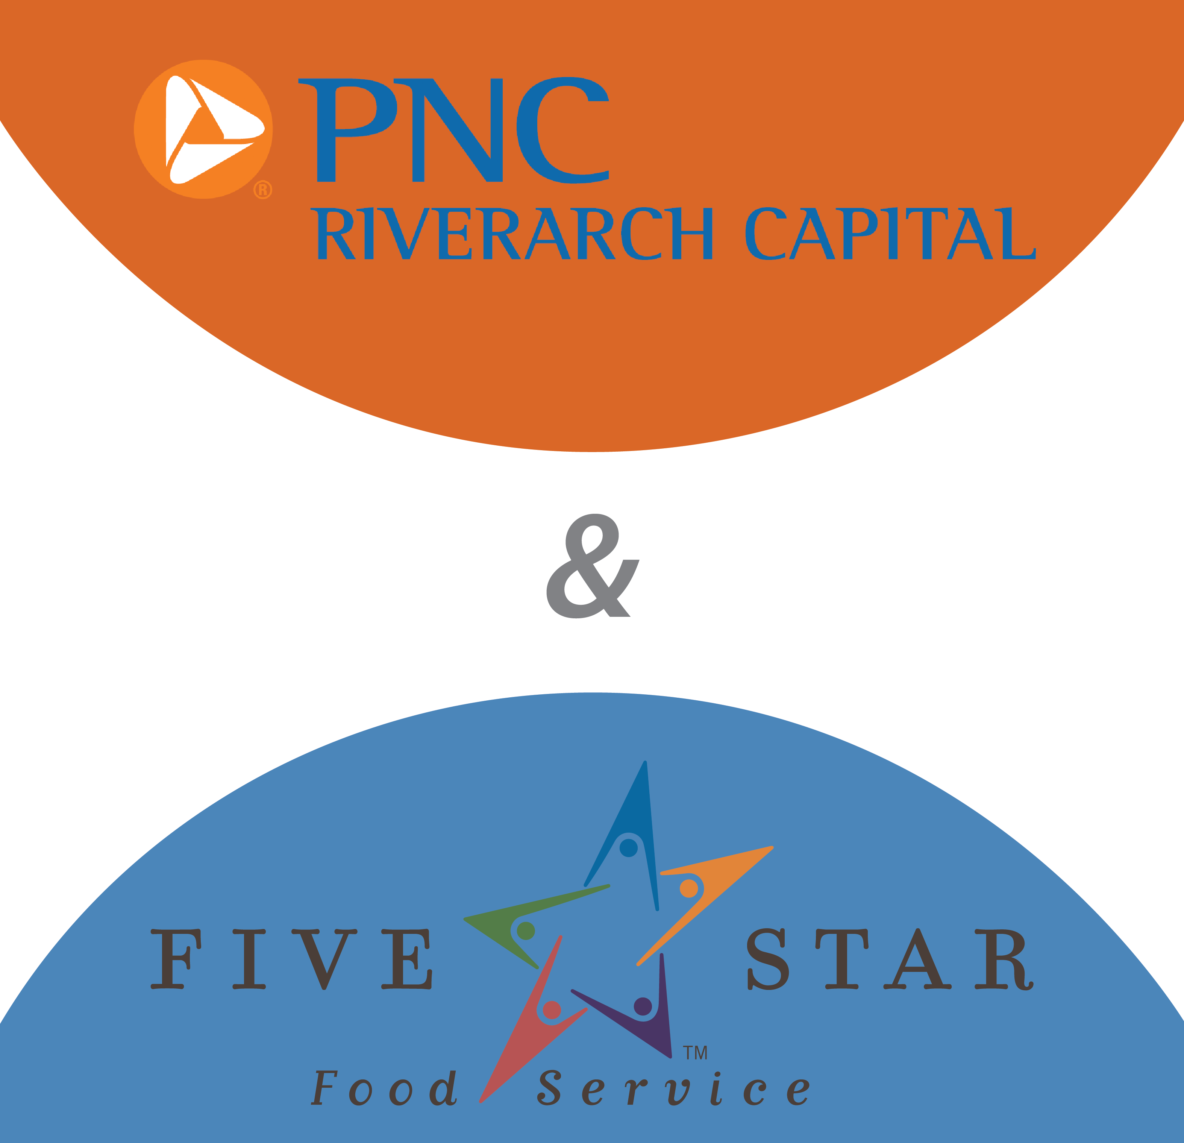 PNC Riverarch Capital Acquires Five Star Food Service